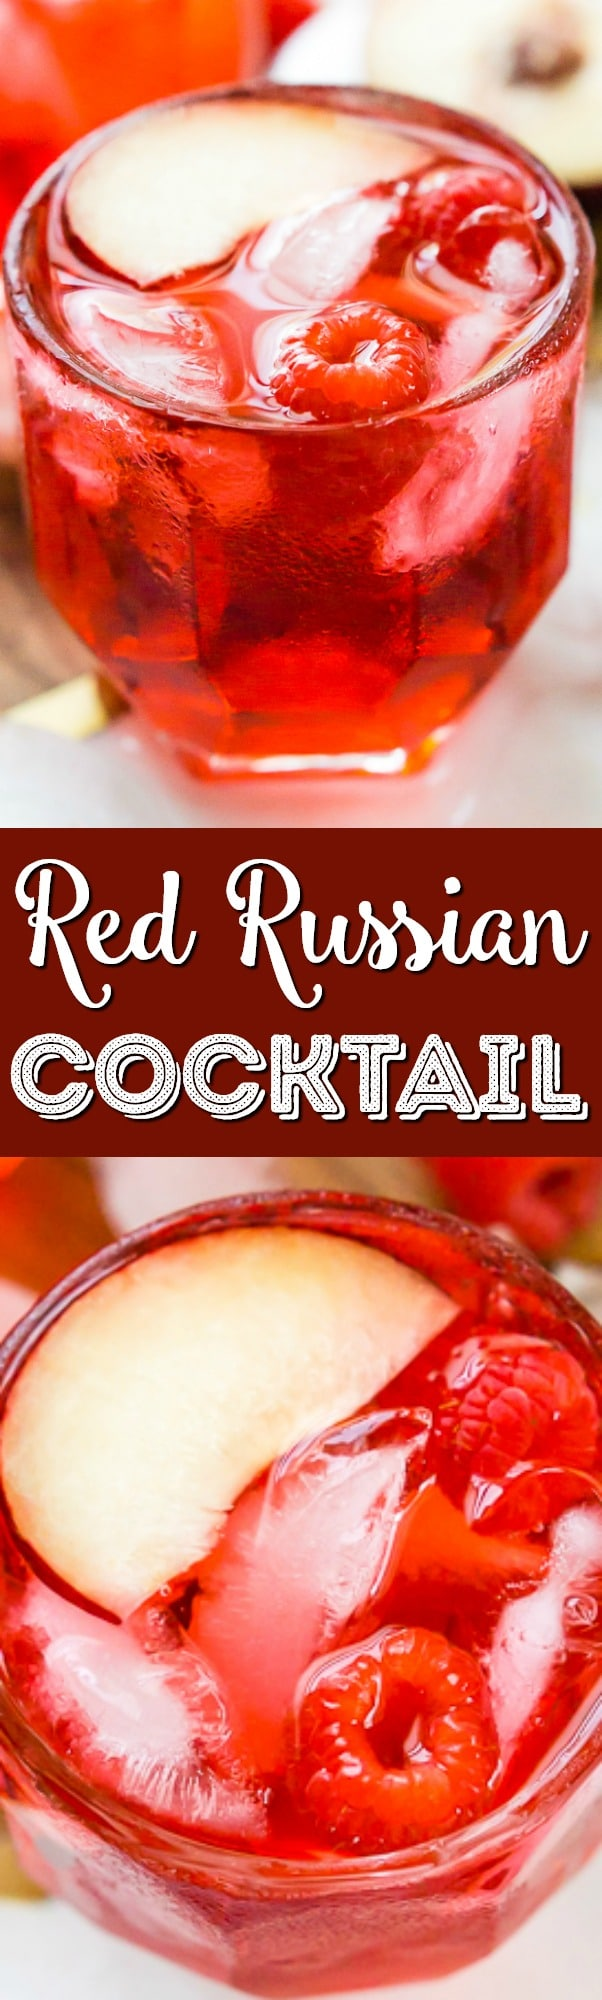 A Red Russian Cocktail is made with equal parts cherry liqueur and vodka over ice. Serve it up in a punch bowl for parties or serve it in short glasses for individual cocktails.  via @sugarandsoulco